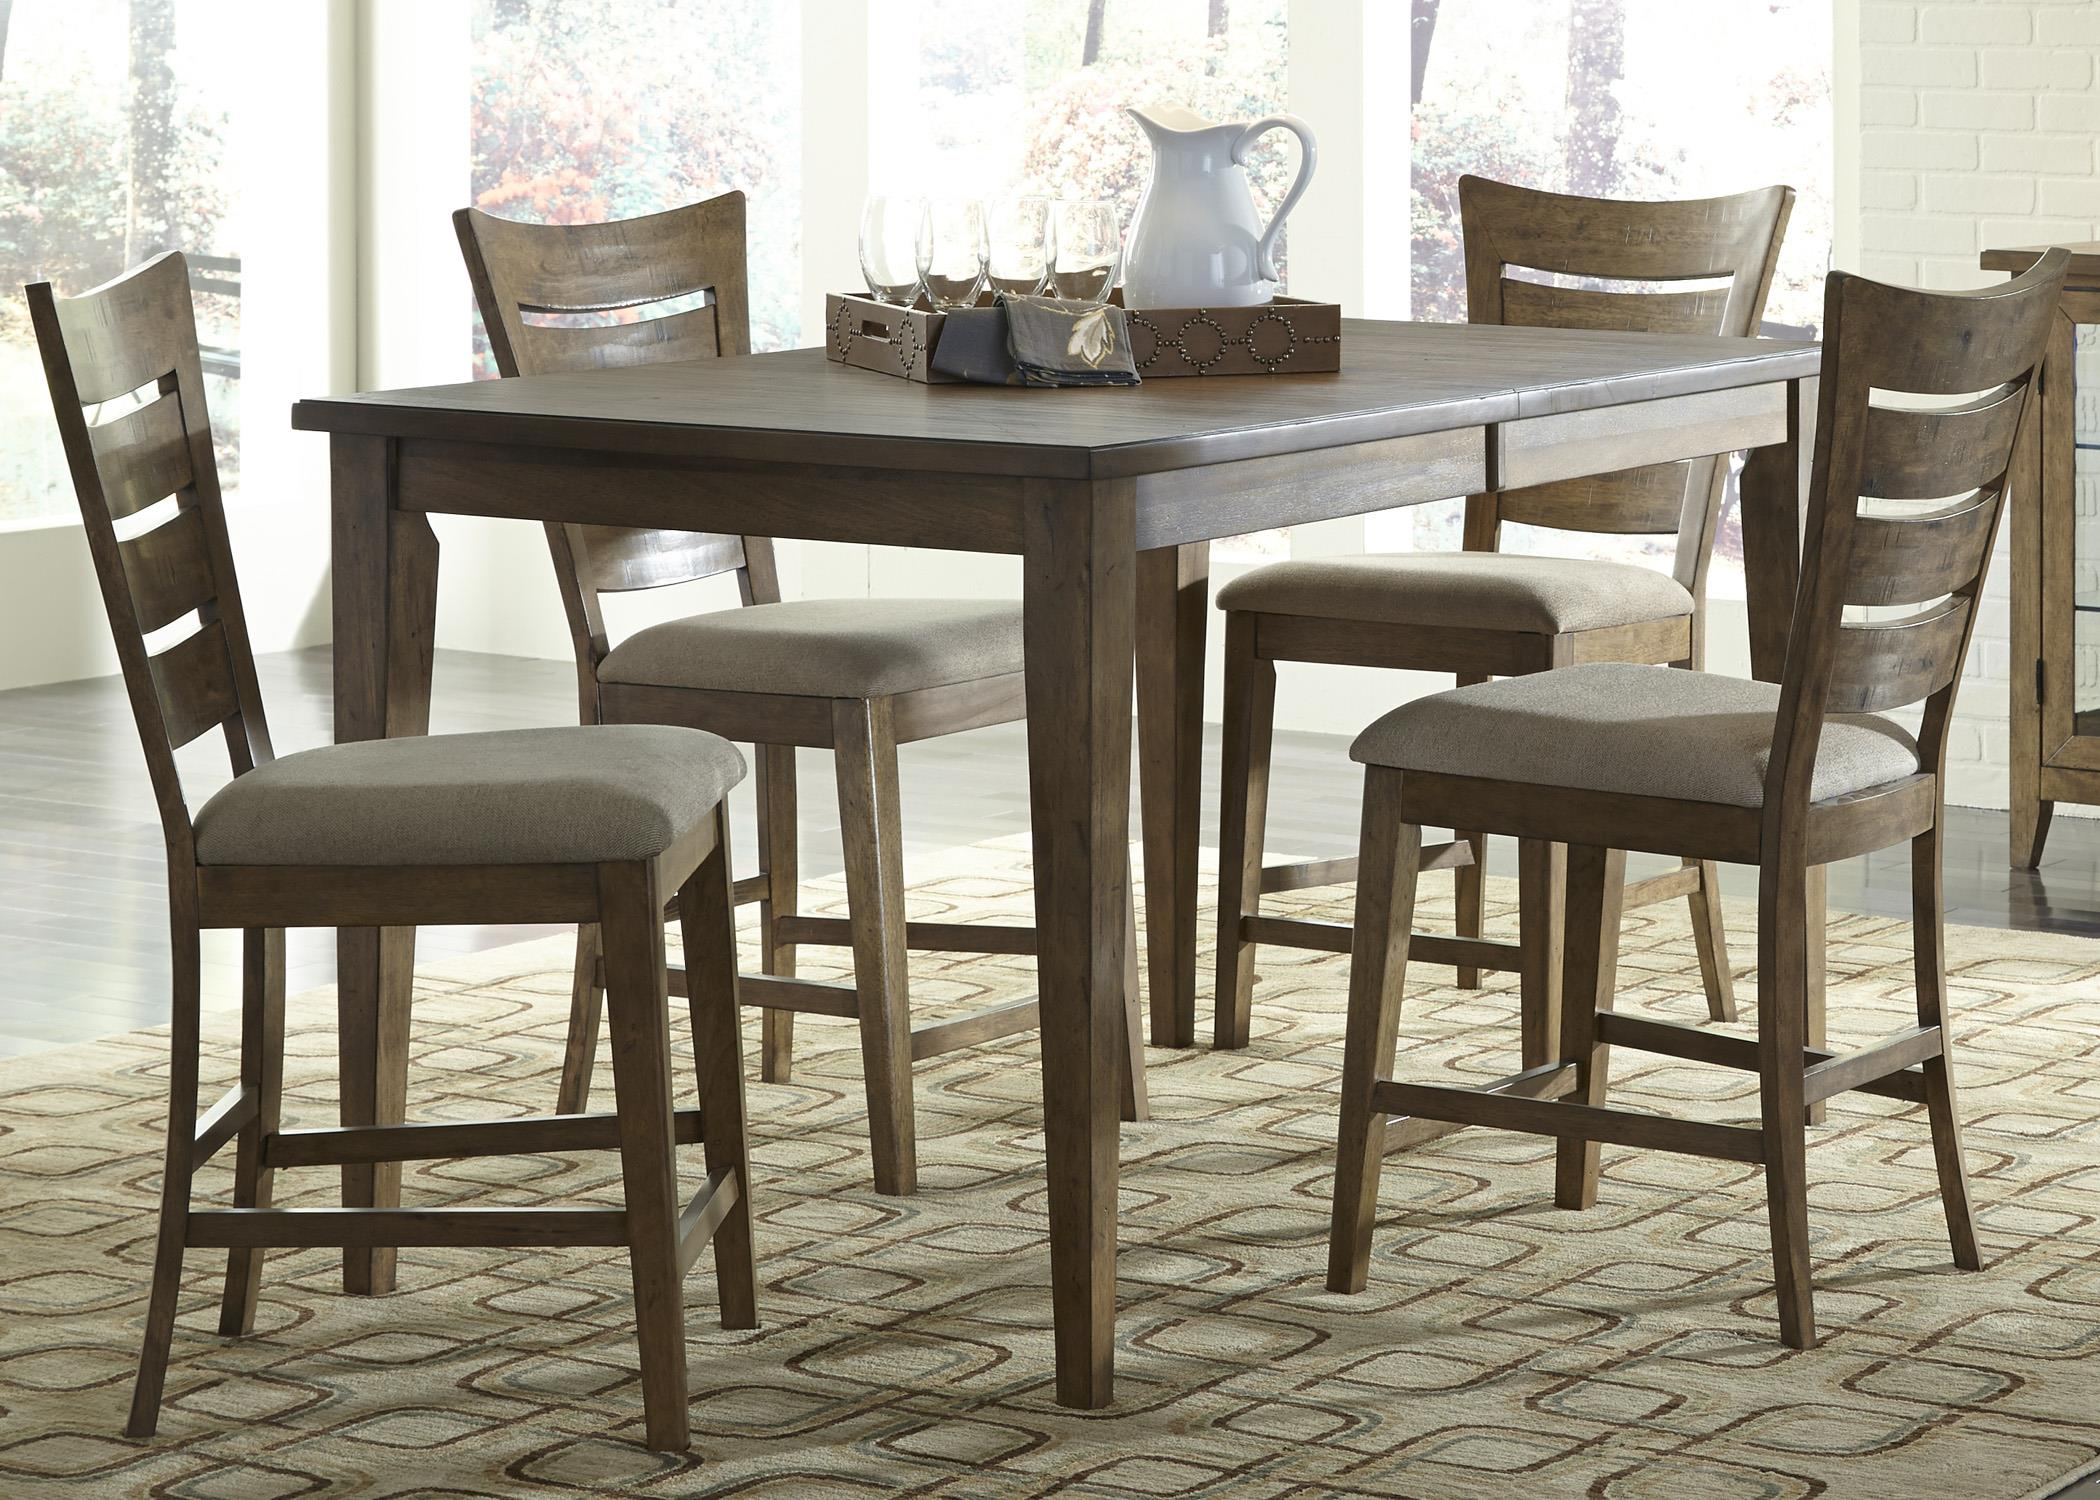 Liberty Furniture Pebble Creek 5 Piece Gathering Table Set - Item Number: 376-CD-5GTS